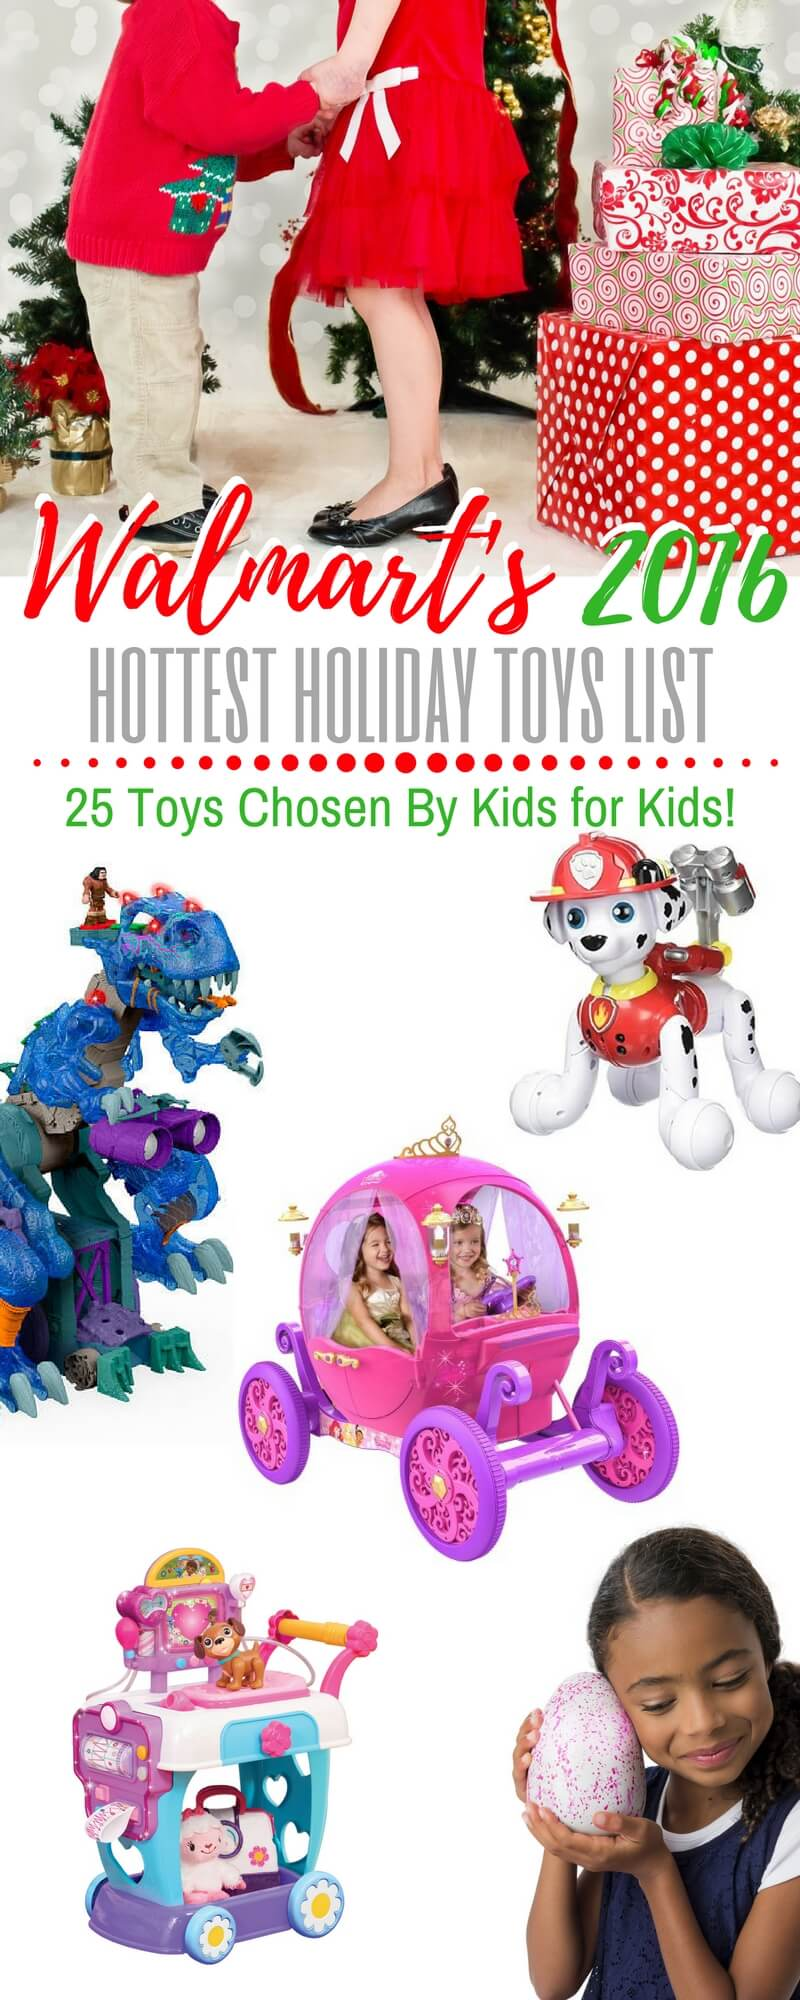 Walmart Toys For Christmas : Walmart s chosen by kids top holiday toys list